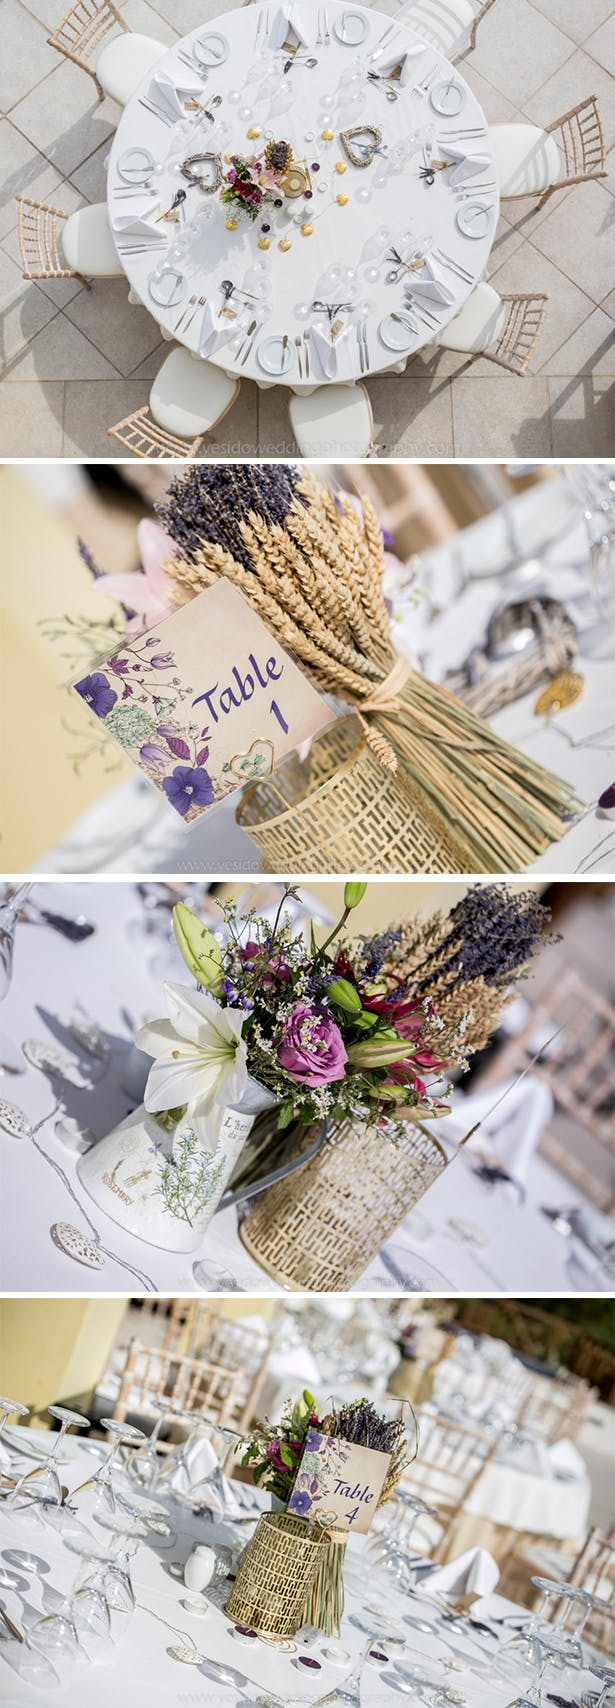 Shabby chic and lavender wedding themed | Marina and Gary's lavender real wedding | Yes I do! Algarve Wedding Photography | Confetti.fo.uk